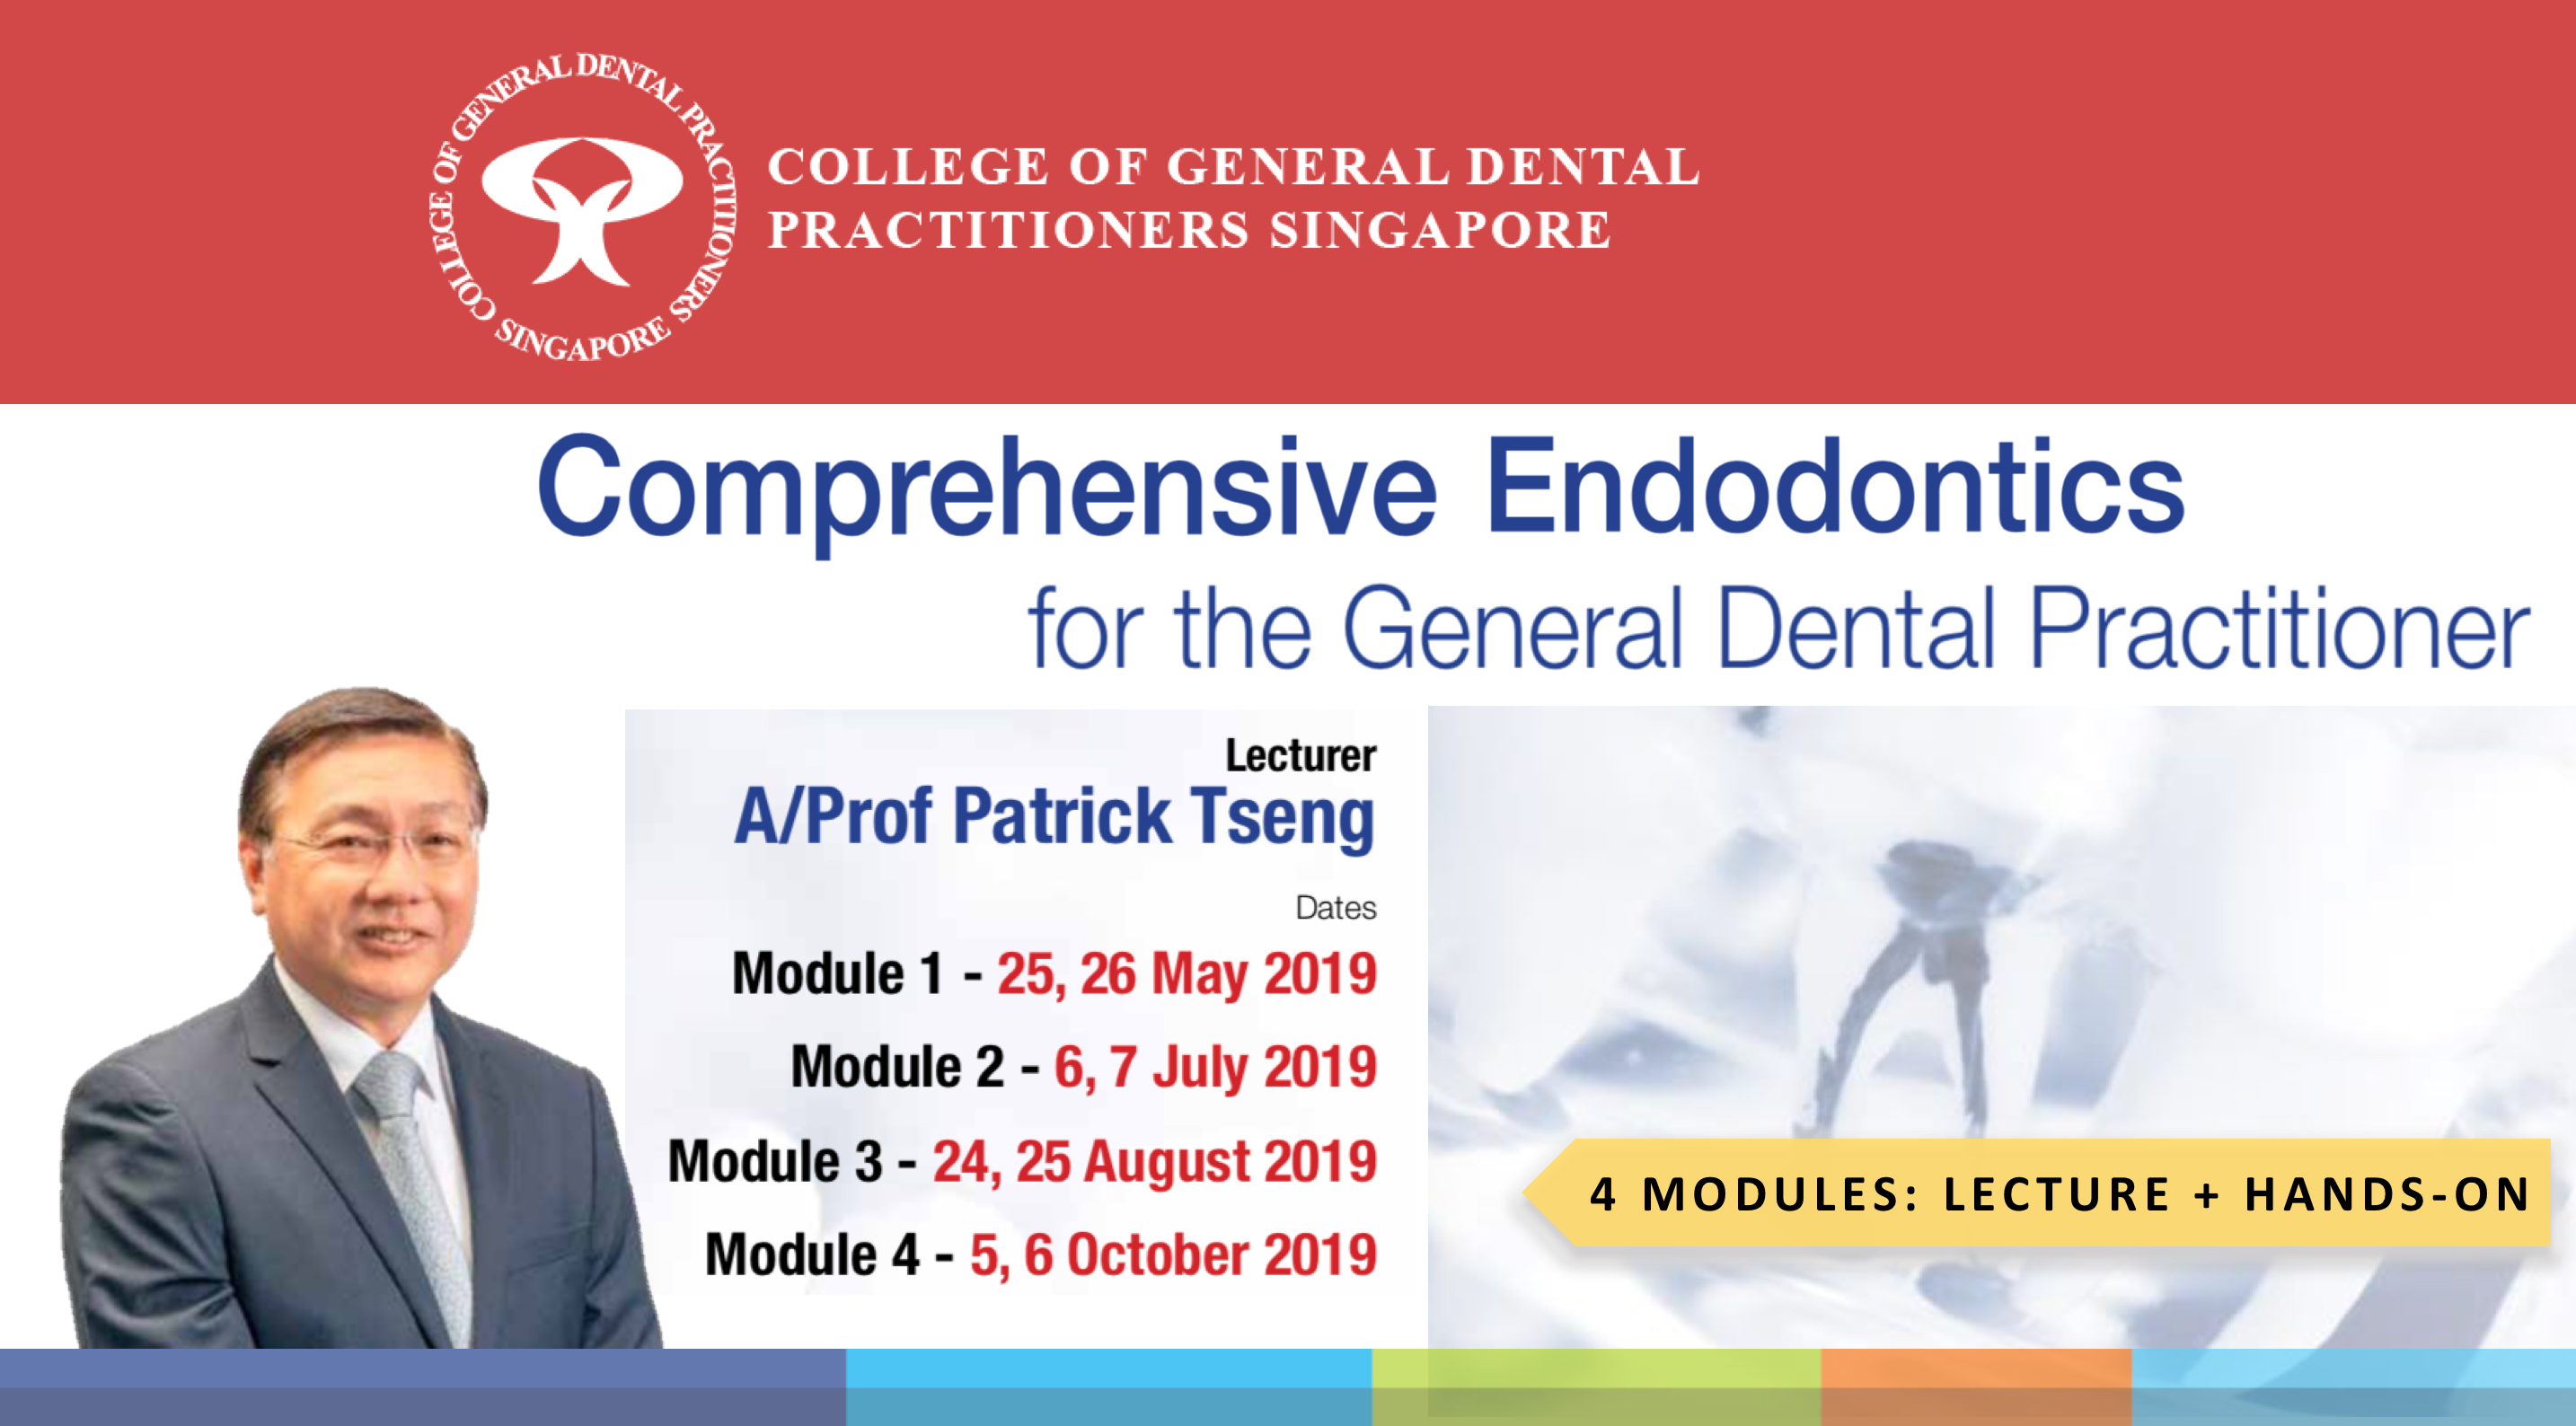 Comprehensive Endodontics for the General Dental Practitioner